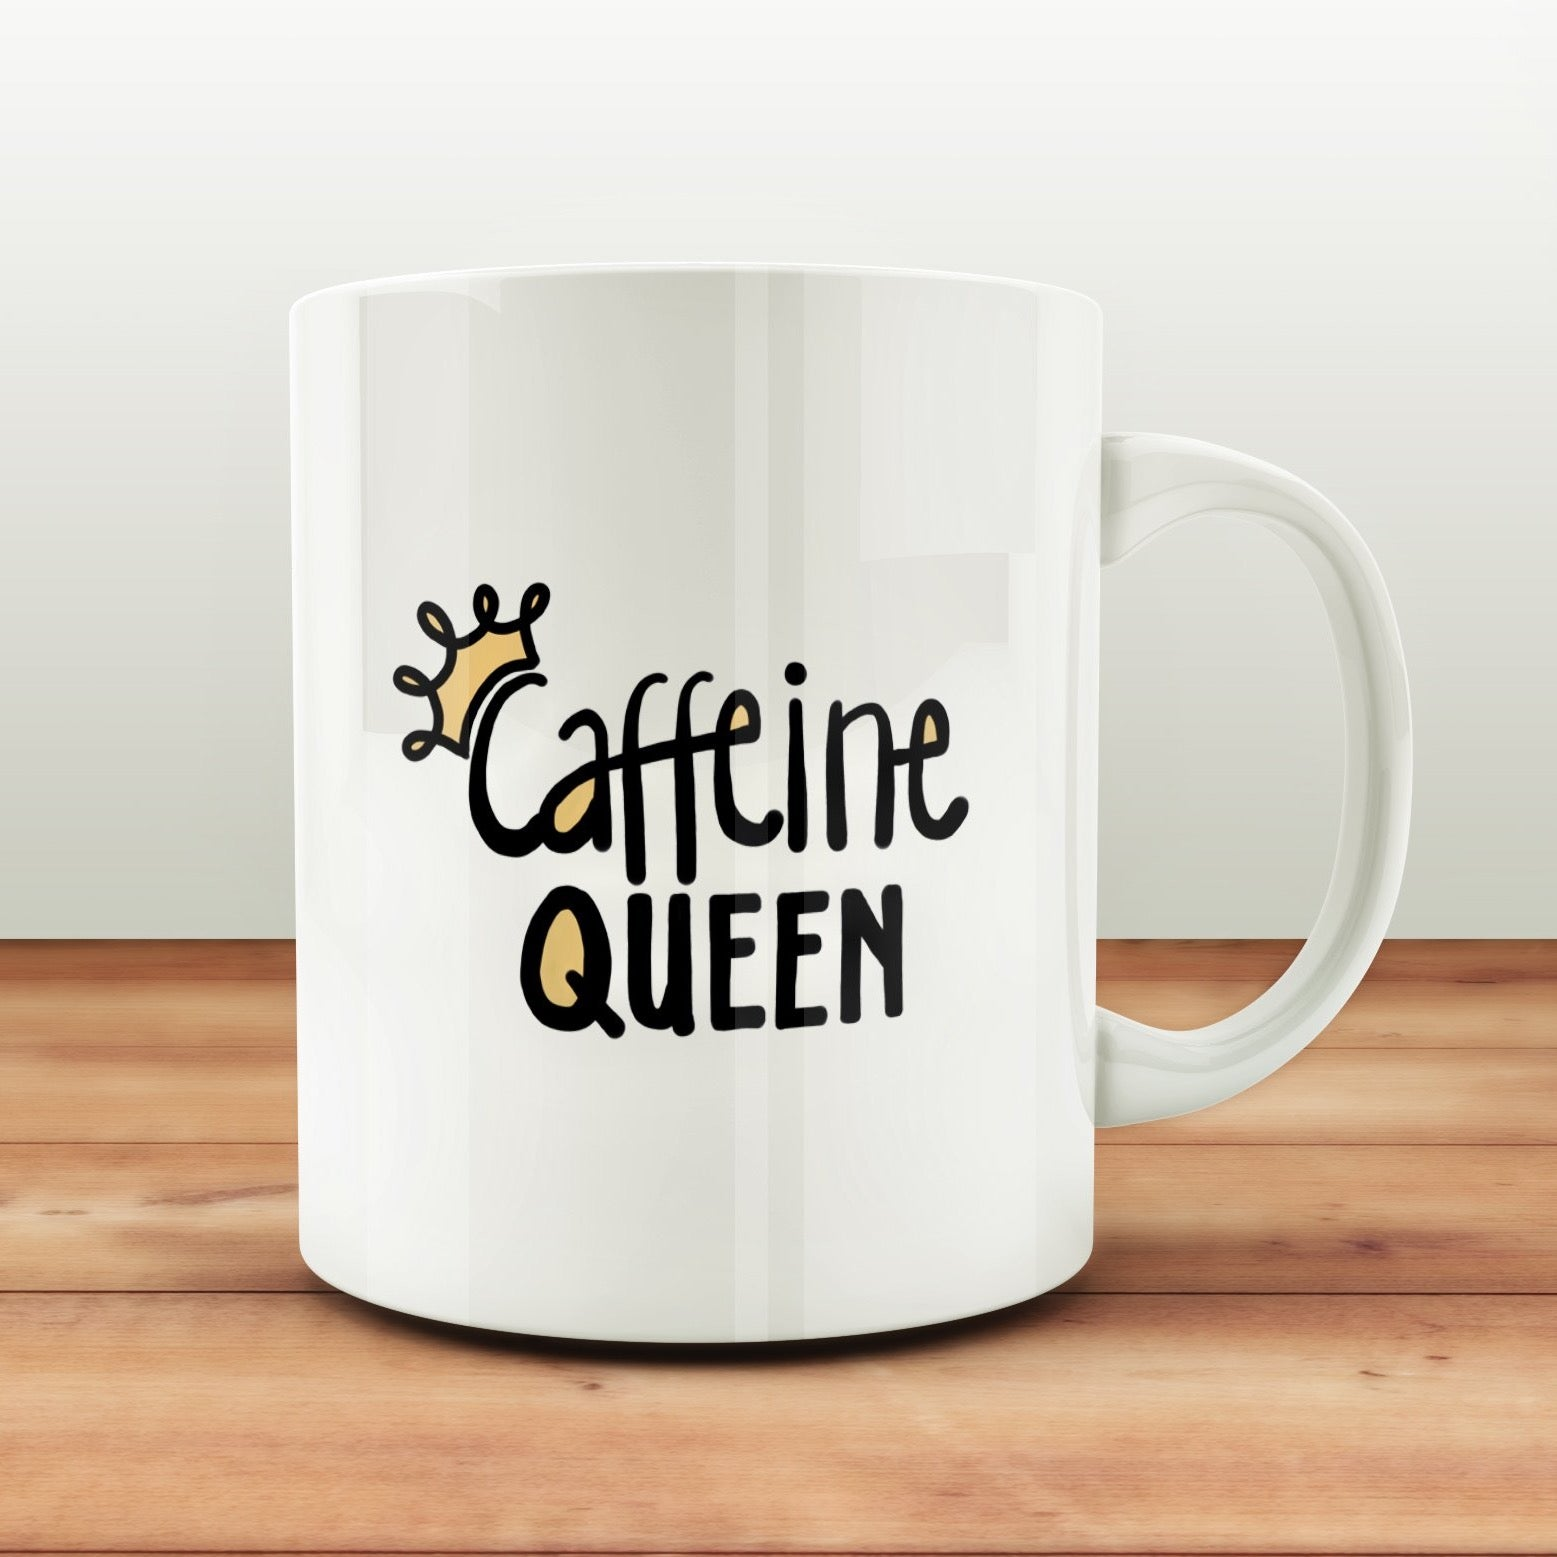 Funny Coffee SVG File, Funny Coffee Cup SVG, Vinyl Sayings Coffee, Caffeine Queen SVG File, Coffee Mug Decal Svg, Coffee Shirt Svg